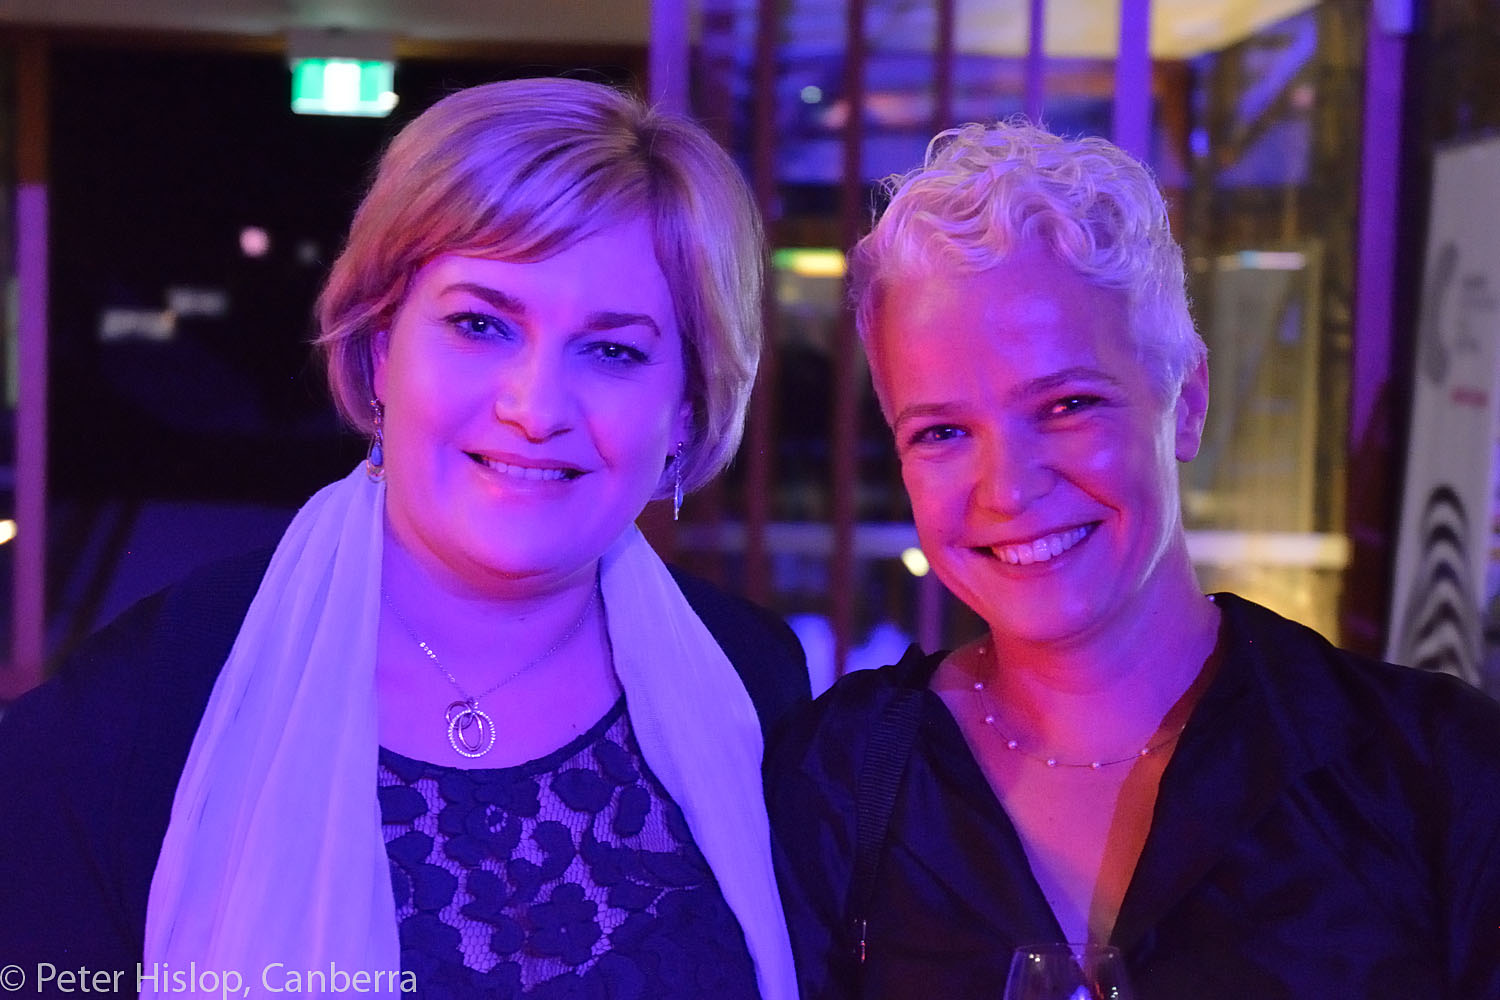 Chefs of Canberra CIMF Gala Dinner at The Conservatory. Rachel Gould and Peppi Wilson